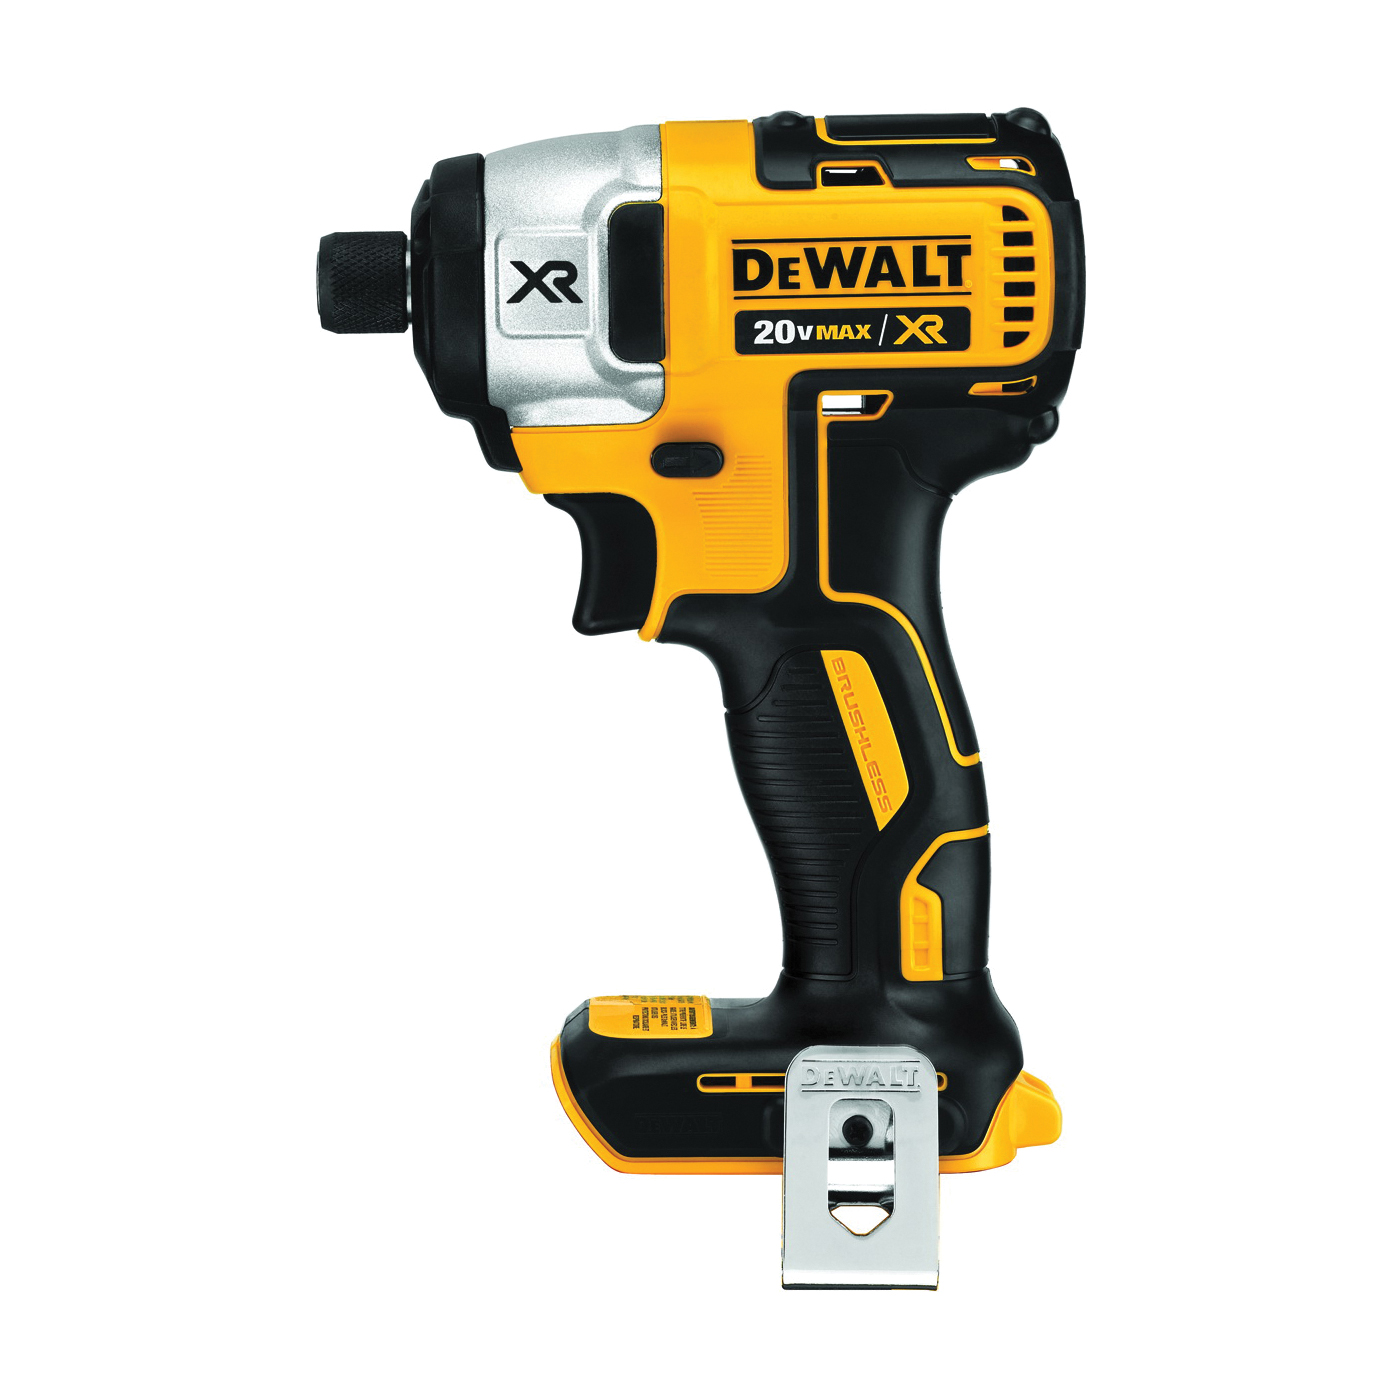 Picture of DeWALT DCF887B/DCF886B Impact Driver, Bare Tool, 20 V Battery, 2 Ah, 1/4 in Drive, Hex Drive, 3800 ipm IPM